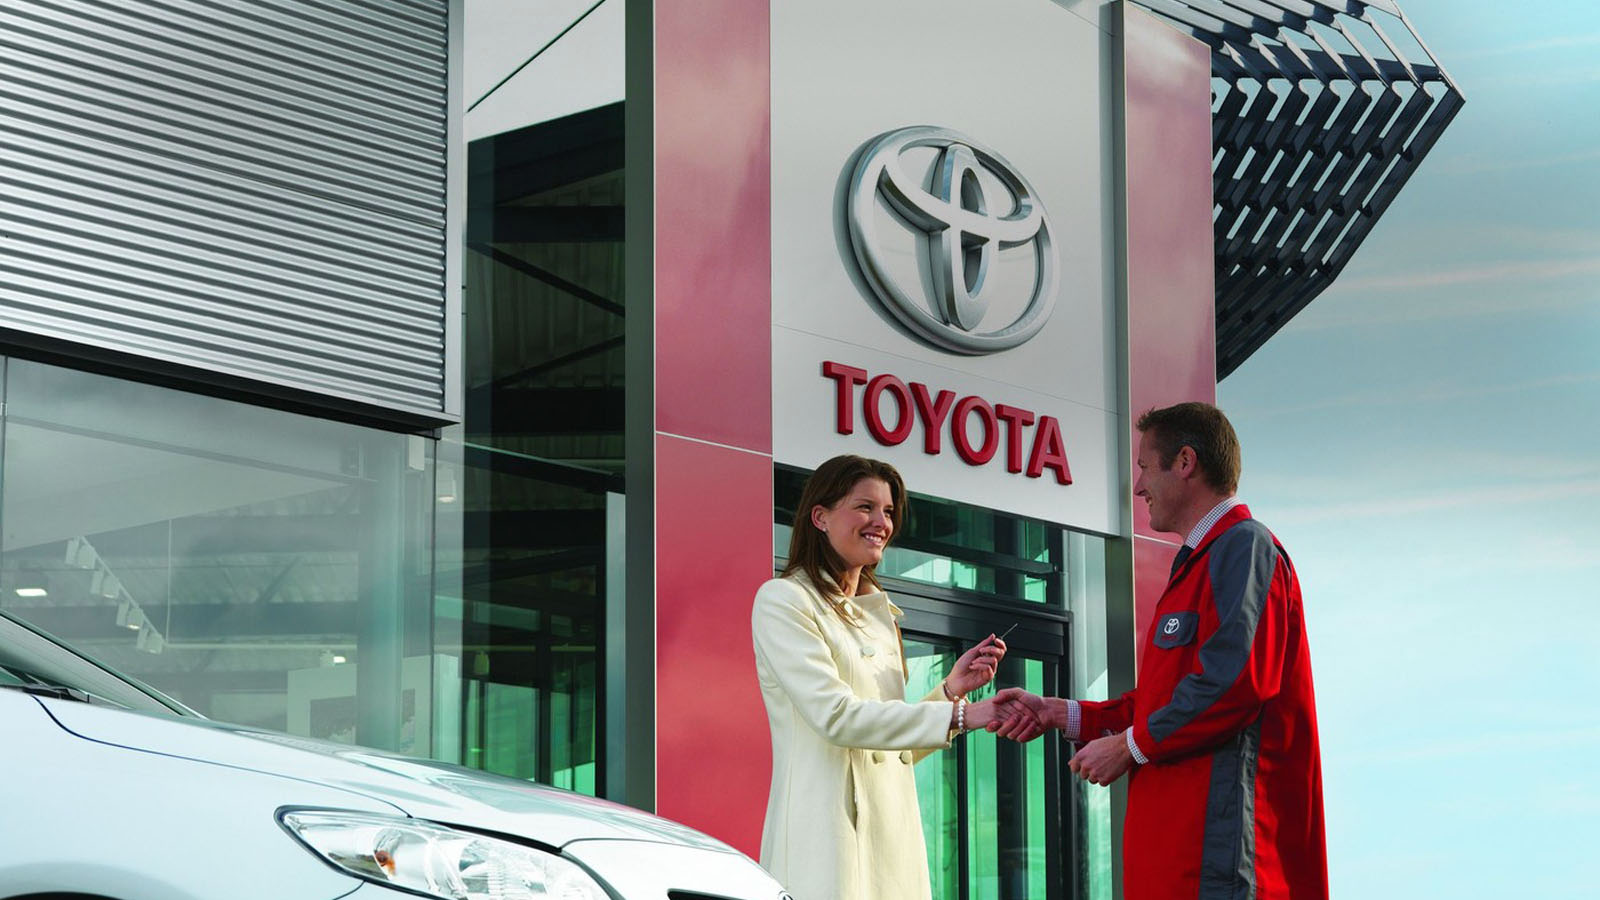 toyota service and maintenance toyota ireland. Black Bedroom Furniture Sets. Home Design Ideas